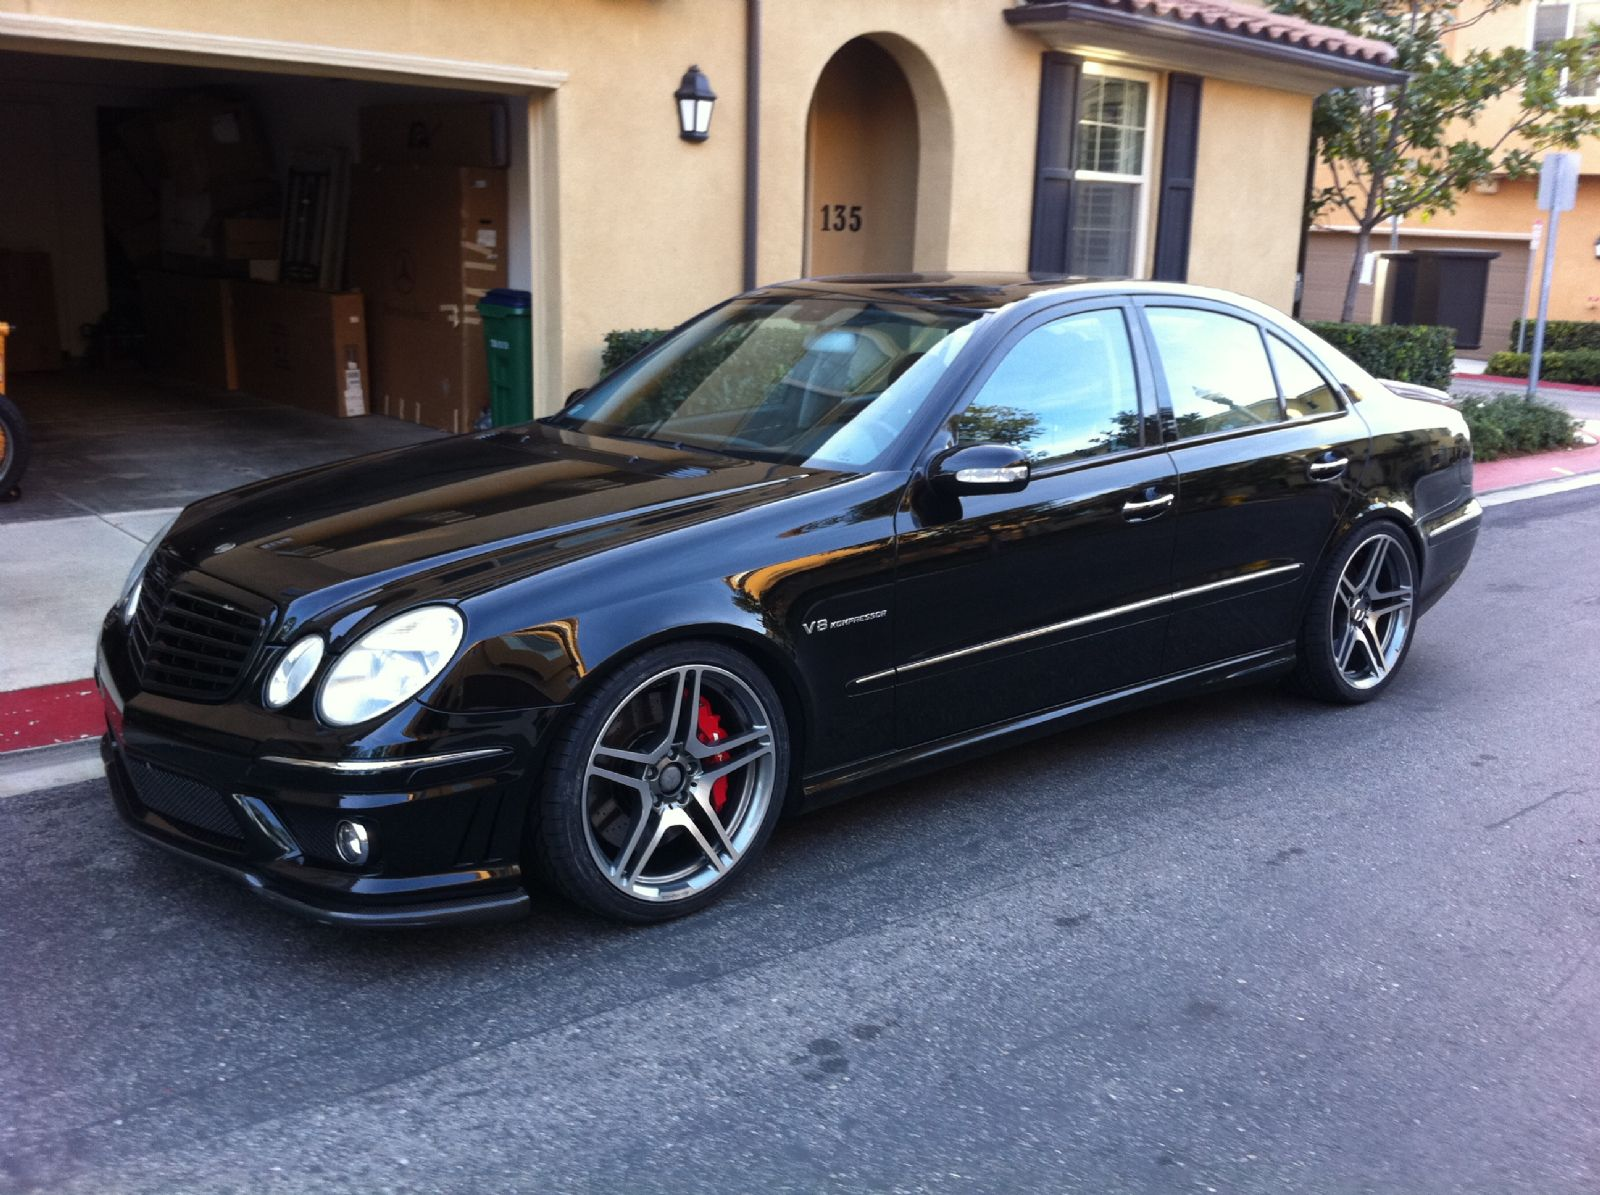 2005 mercedes e55 amg e63 upgraded for sale san antonio for 2005 mercedes benz e55 amg